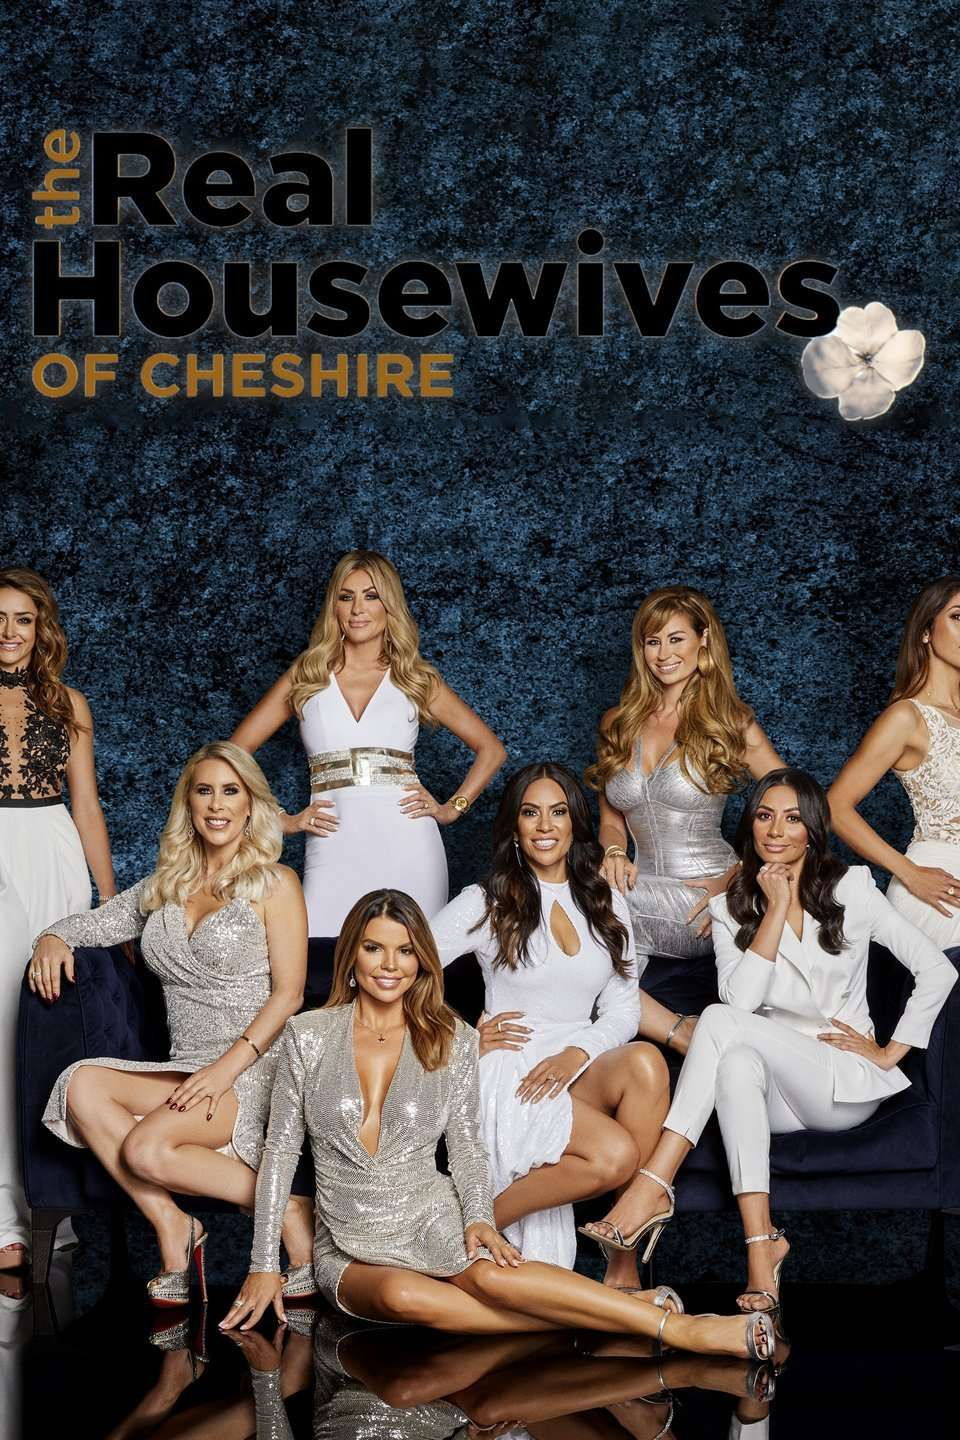 The Real Housewives of Cheshire kapak